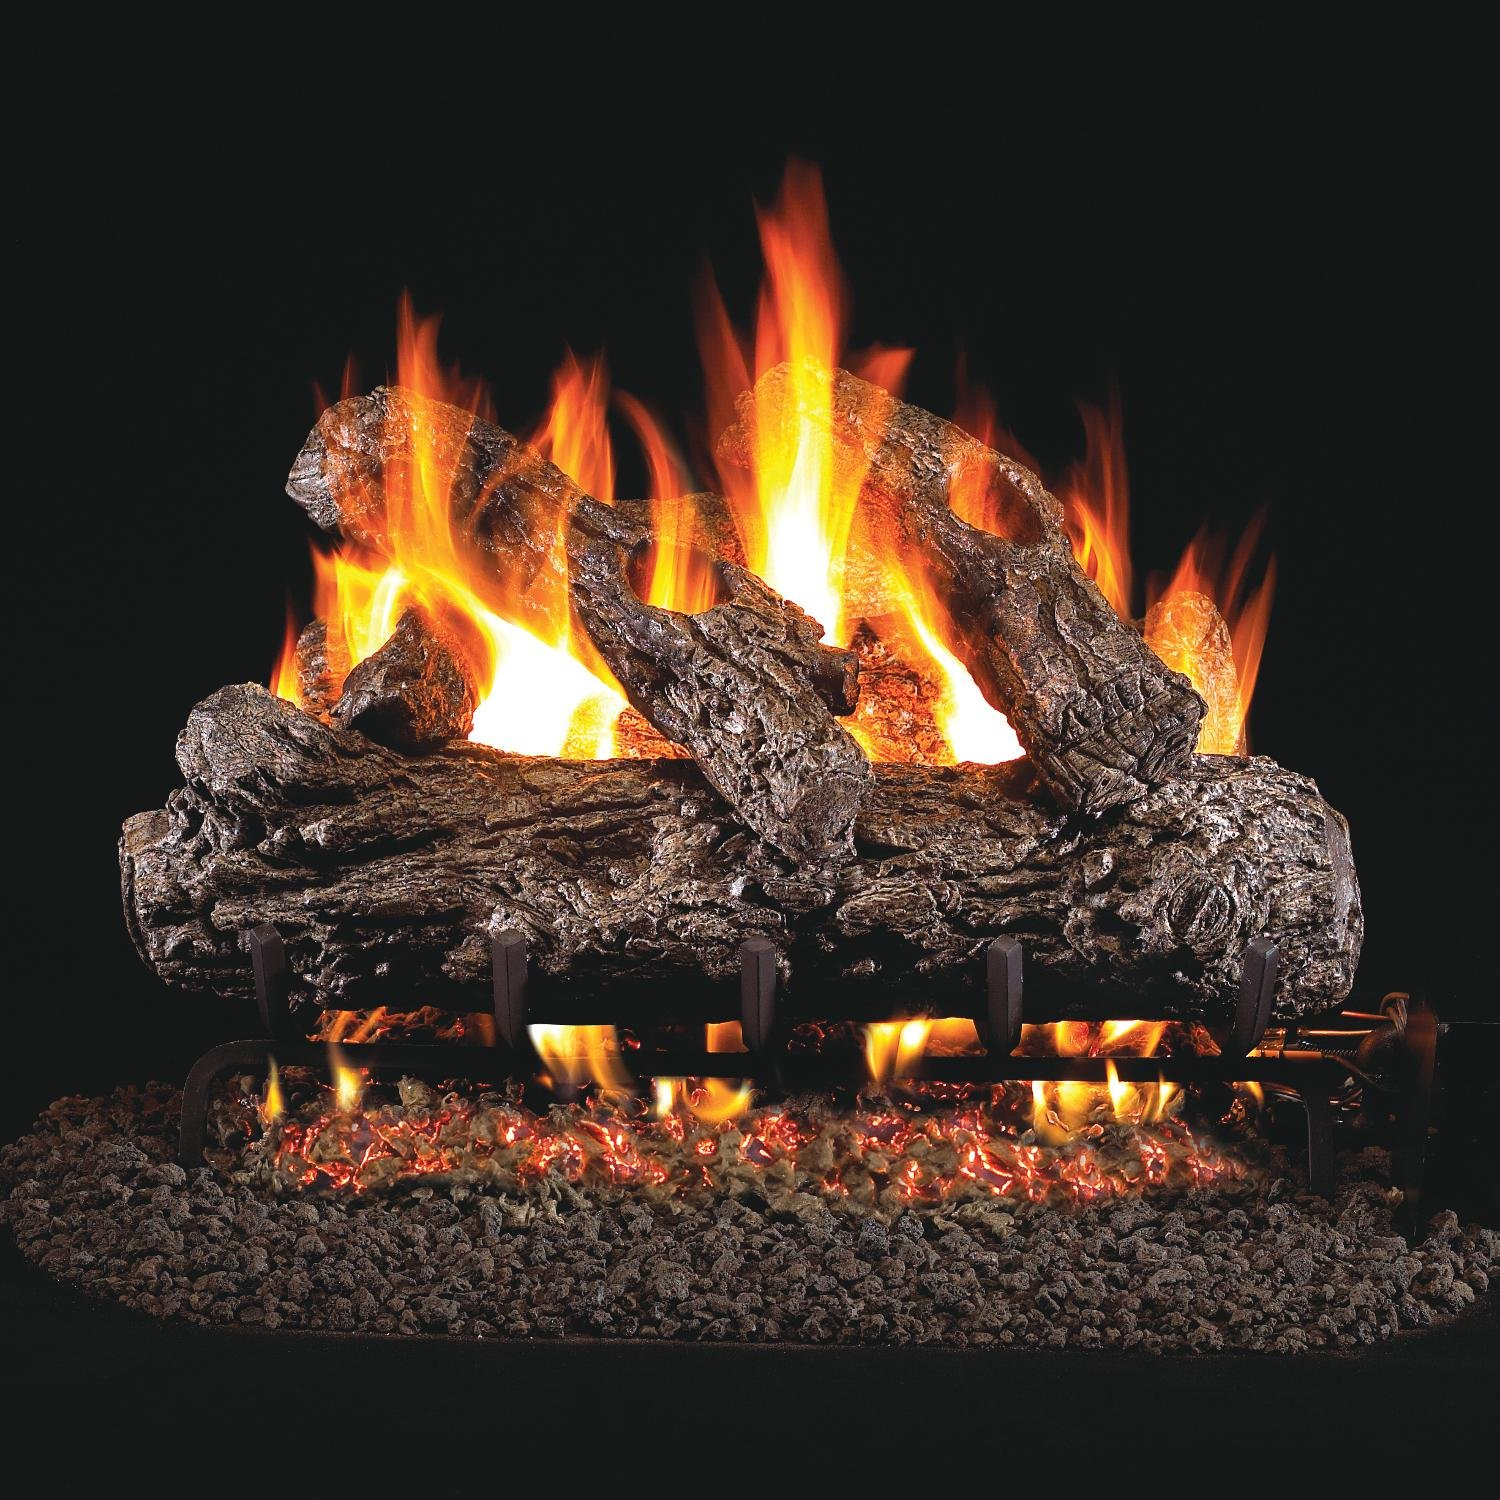 Peterson Real Fyre 30-inch Rustic Oak Gas Log Set With Vented Natural Gas G45 Burner - Match Light by Peterson Real Fyre